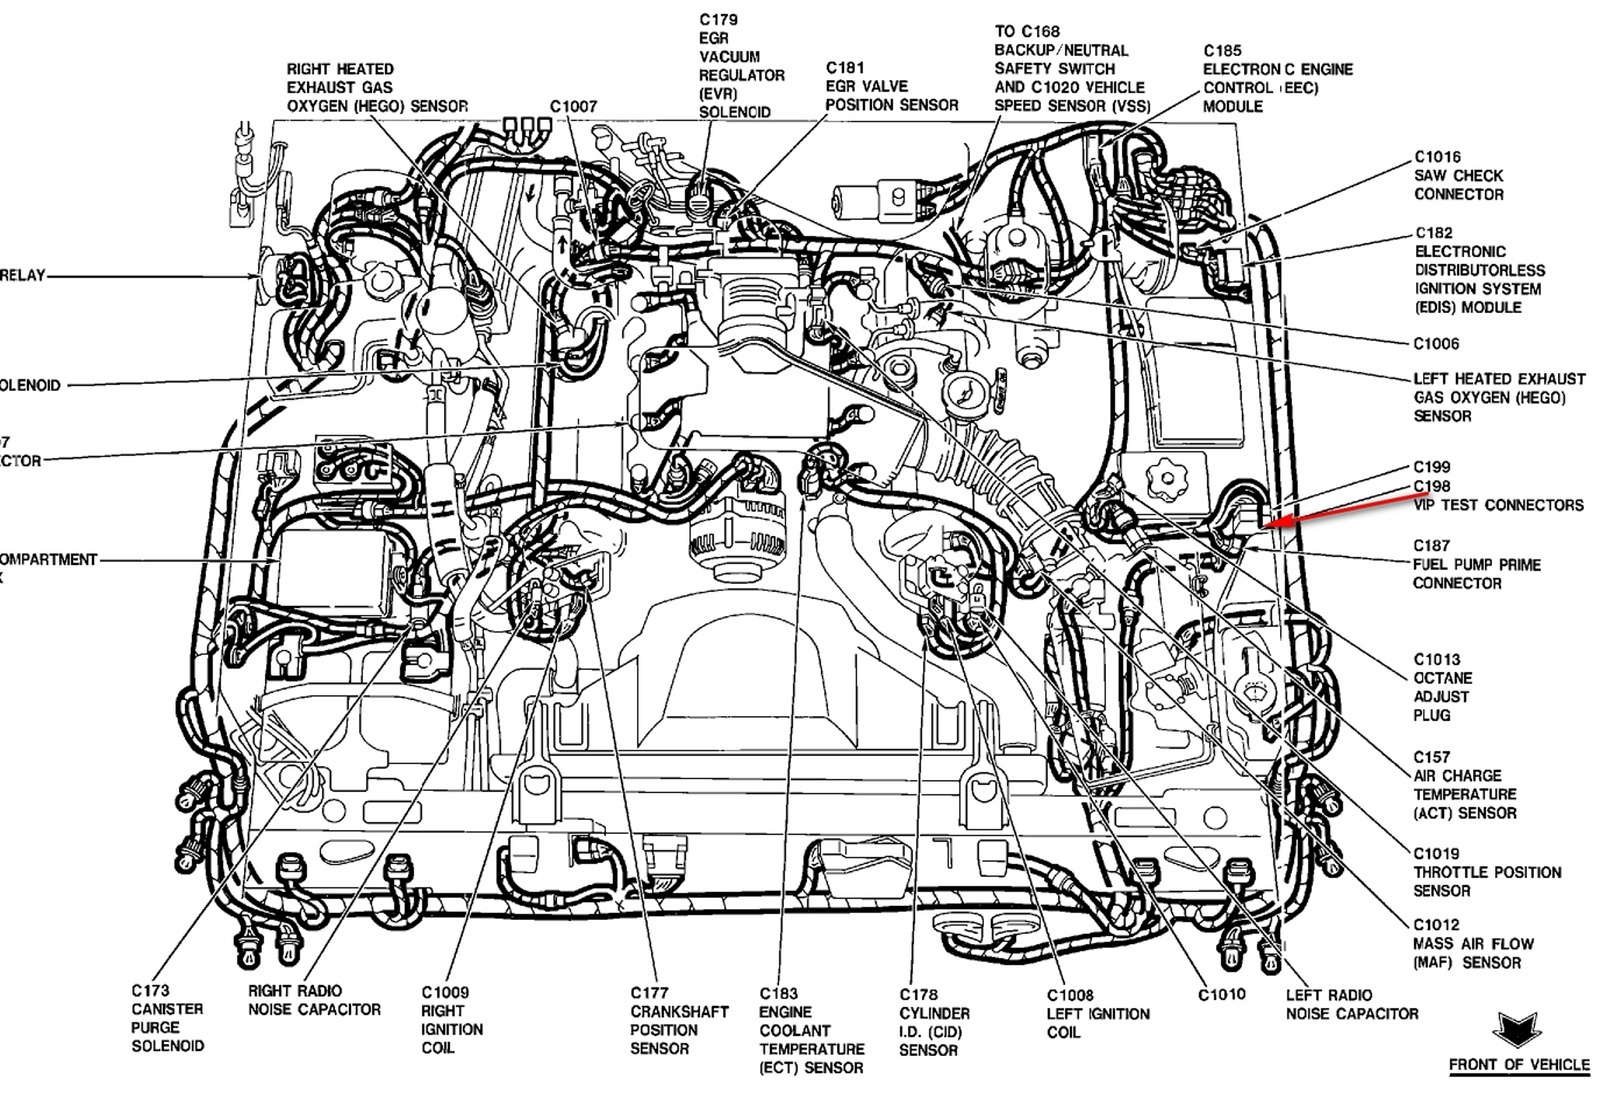 Discussion T16270 ds545905 on 2006 cadillac dts fuse box diagram